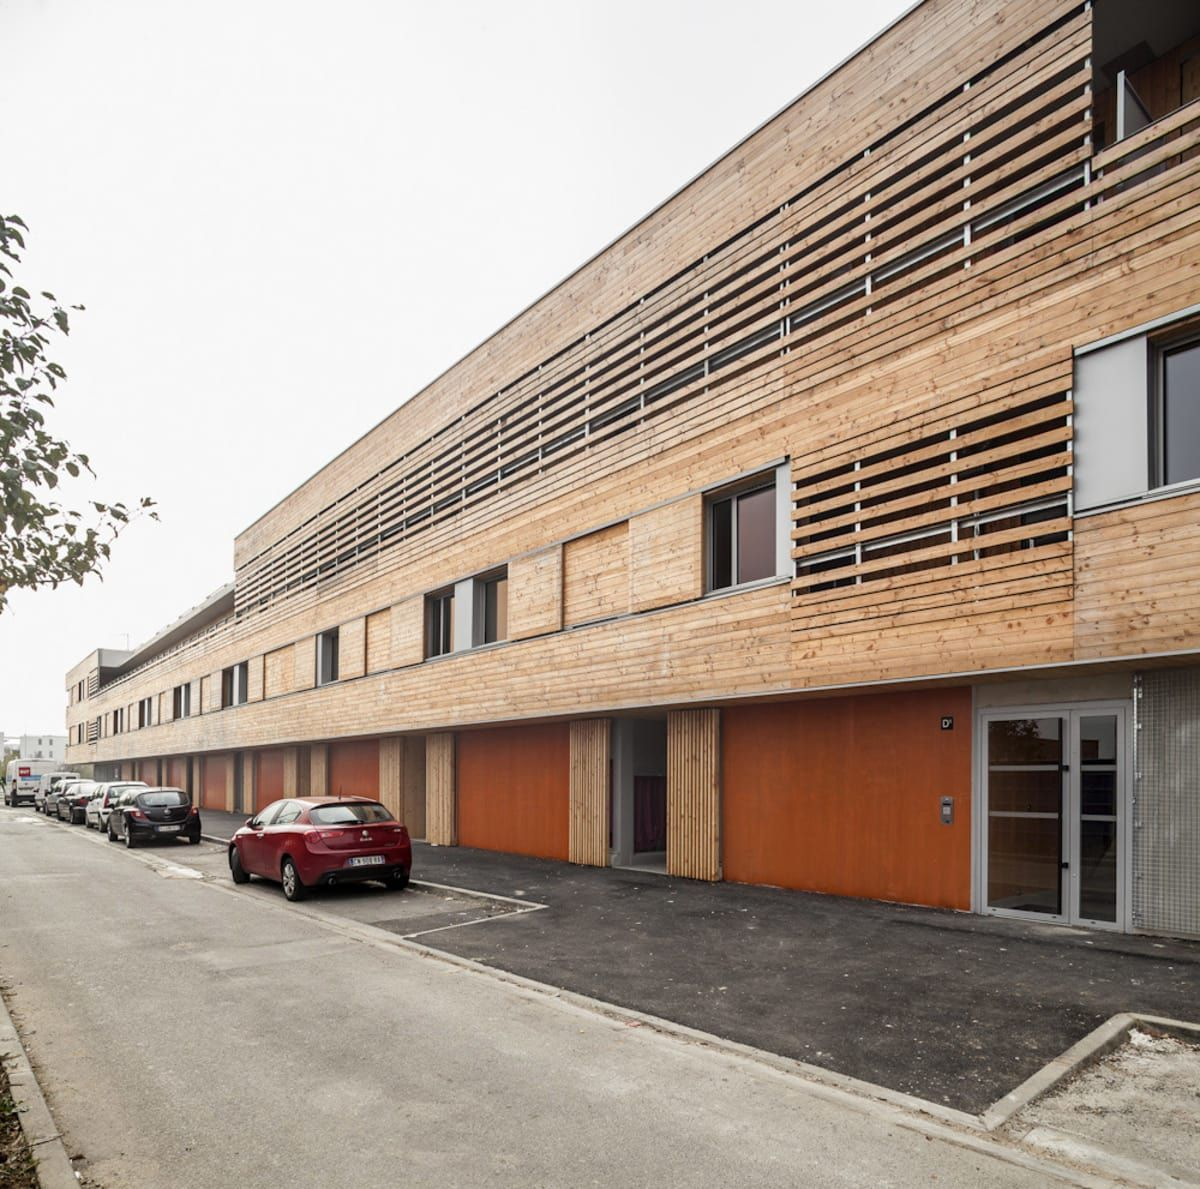 mateo arquitectura, Adrià Goula · Dwellings in Toulouse